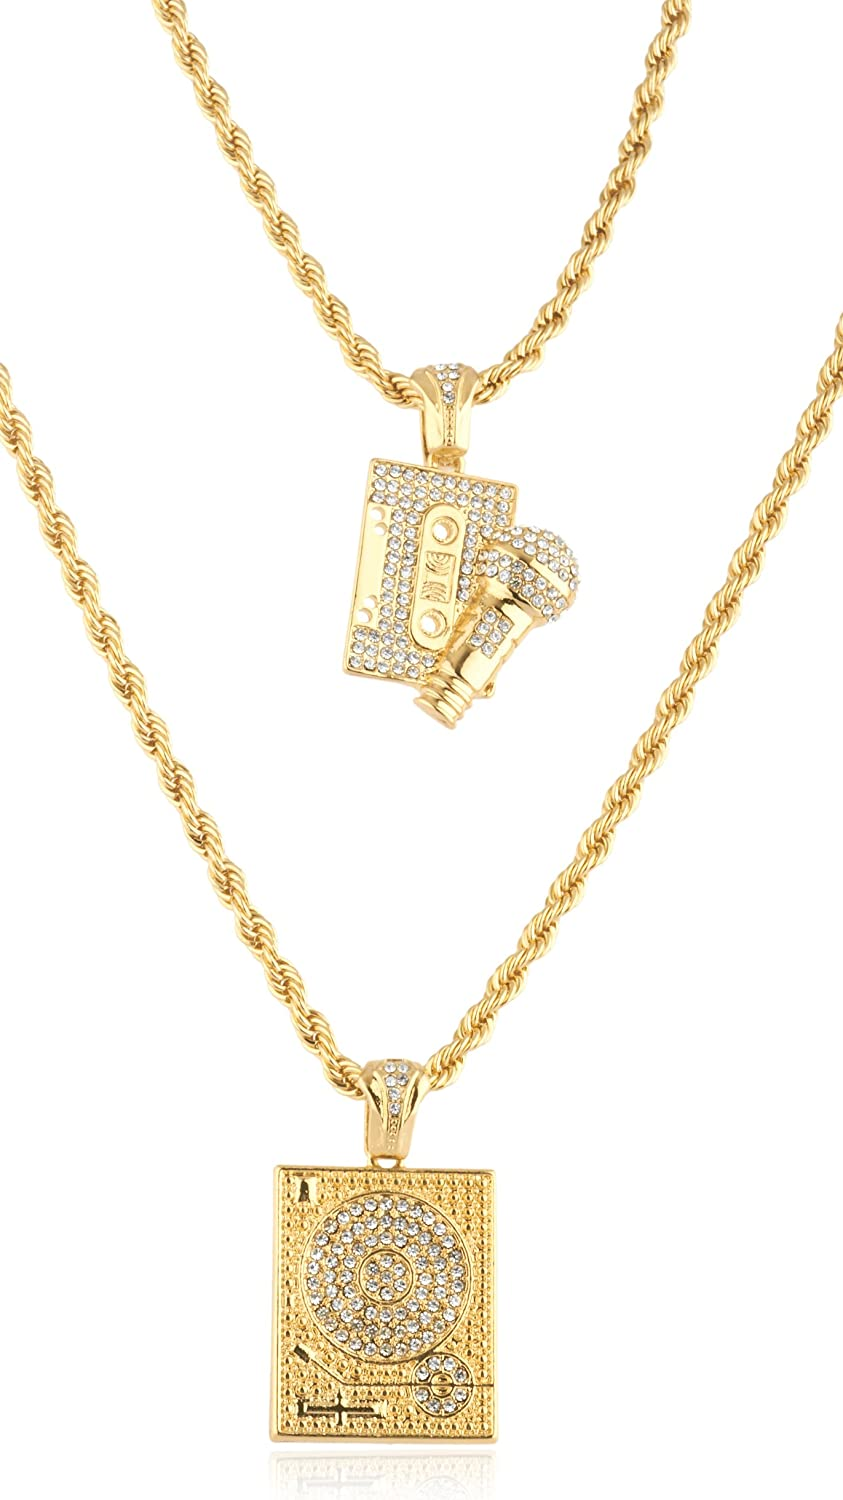 Men's Double Layered Necklace with Iced Out Music Themed Pendants (C-1317)